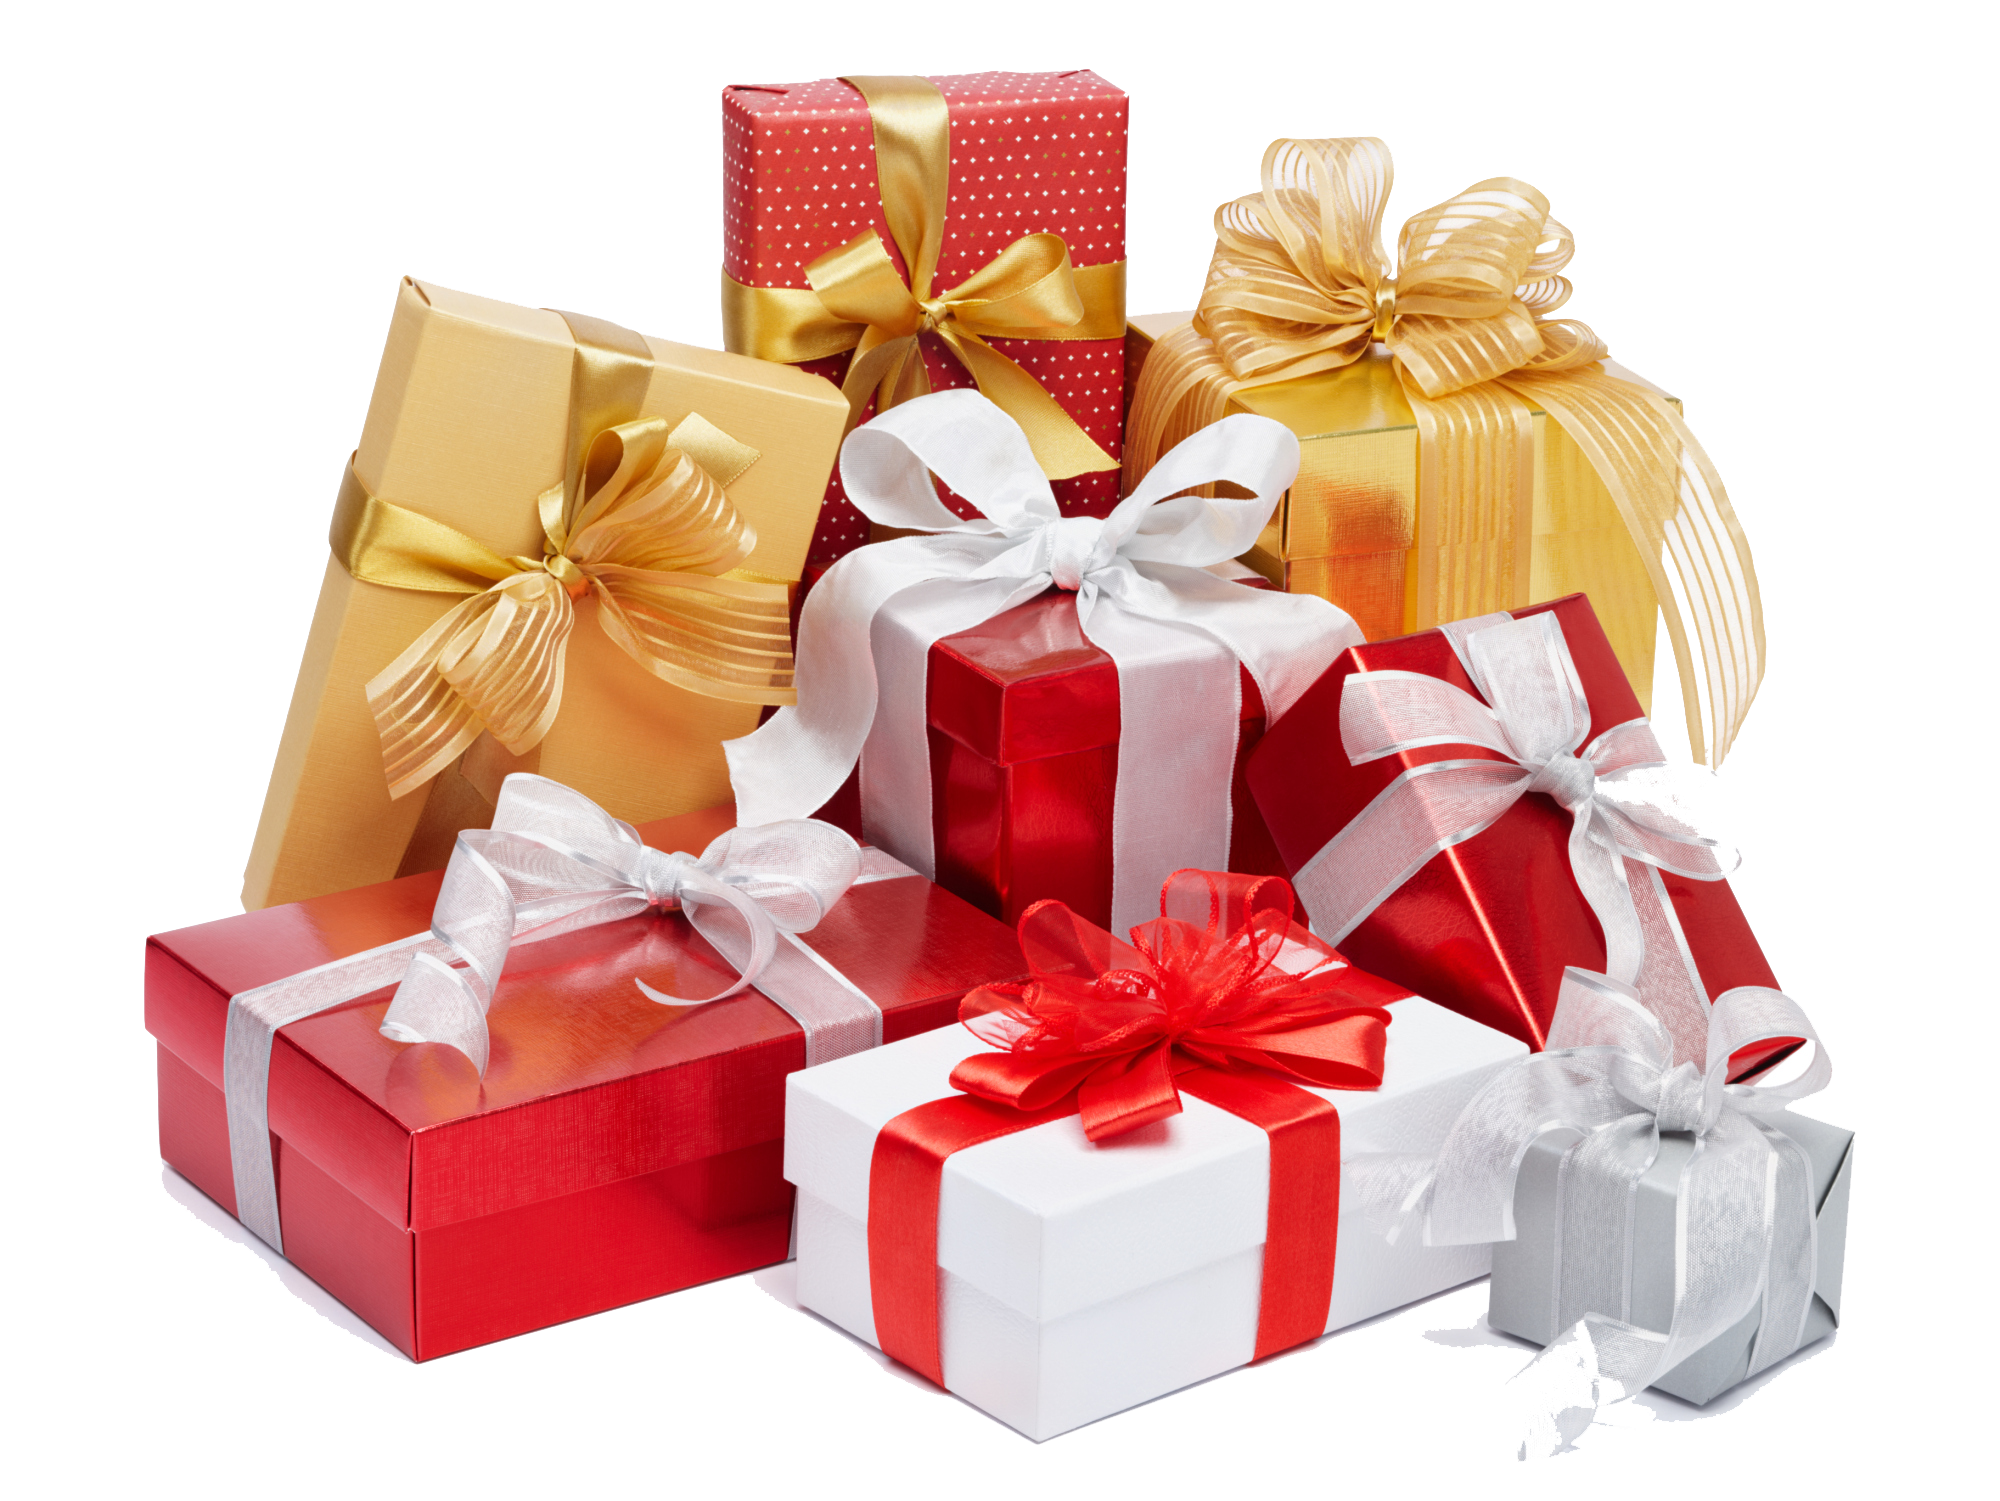 download christmas gift transparent png image pngimg #11338